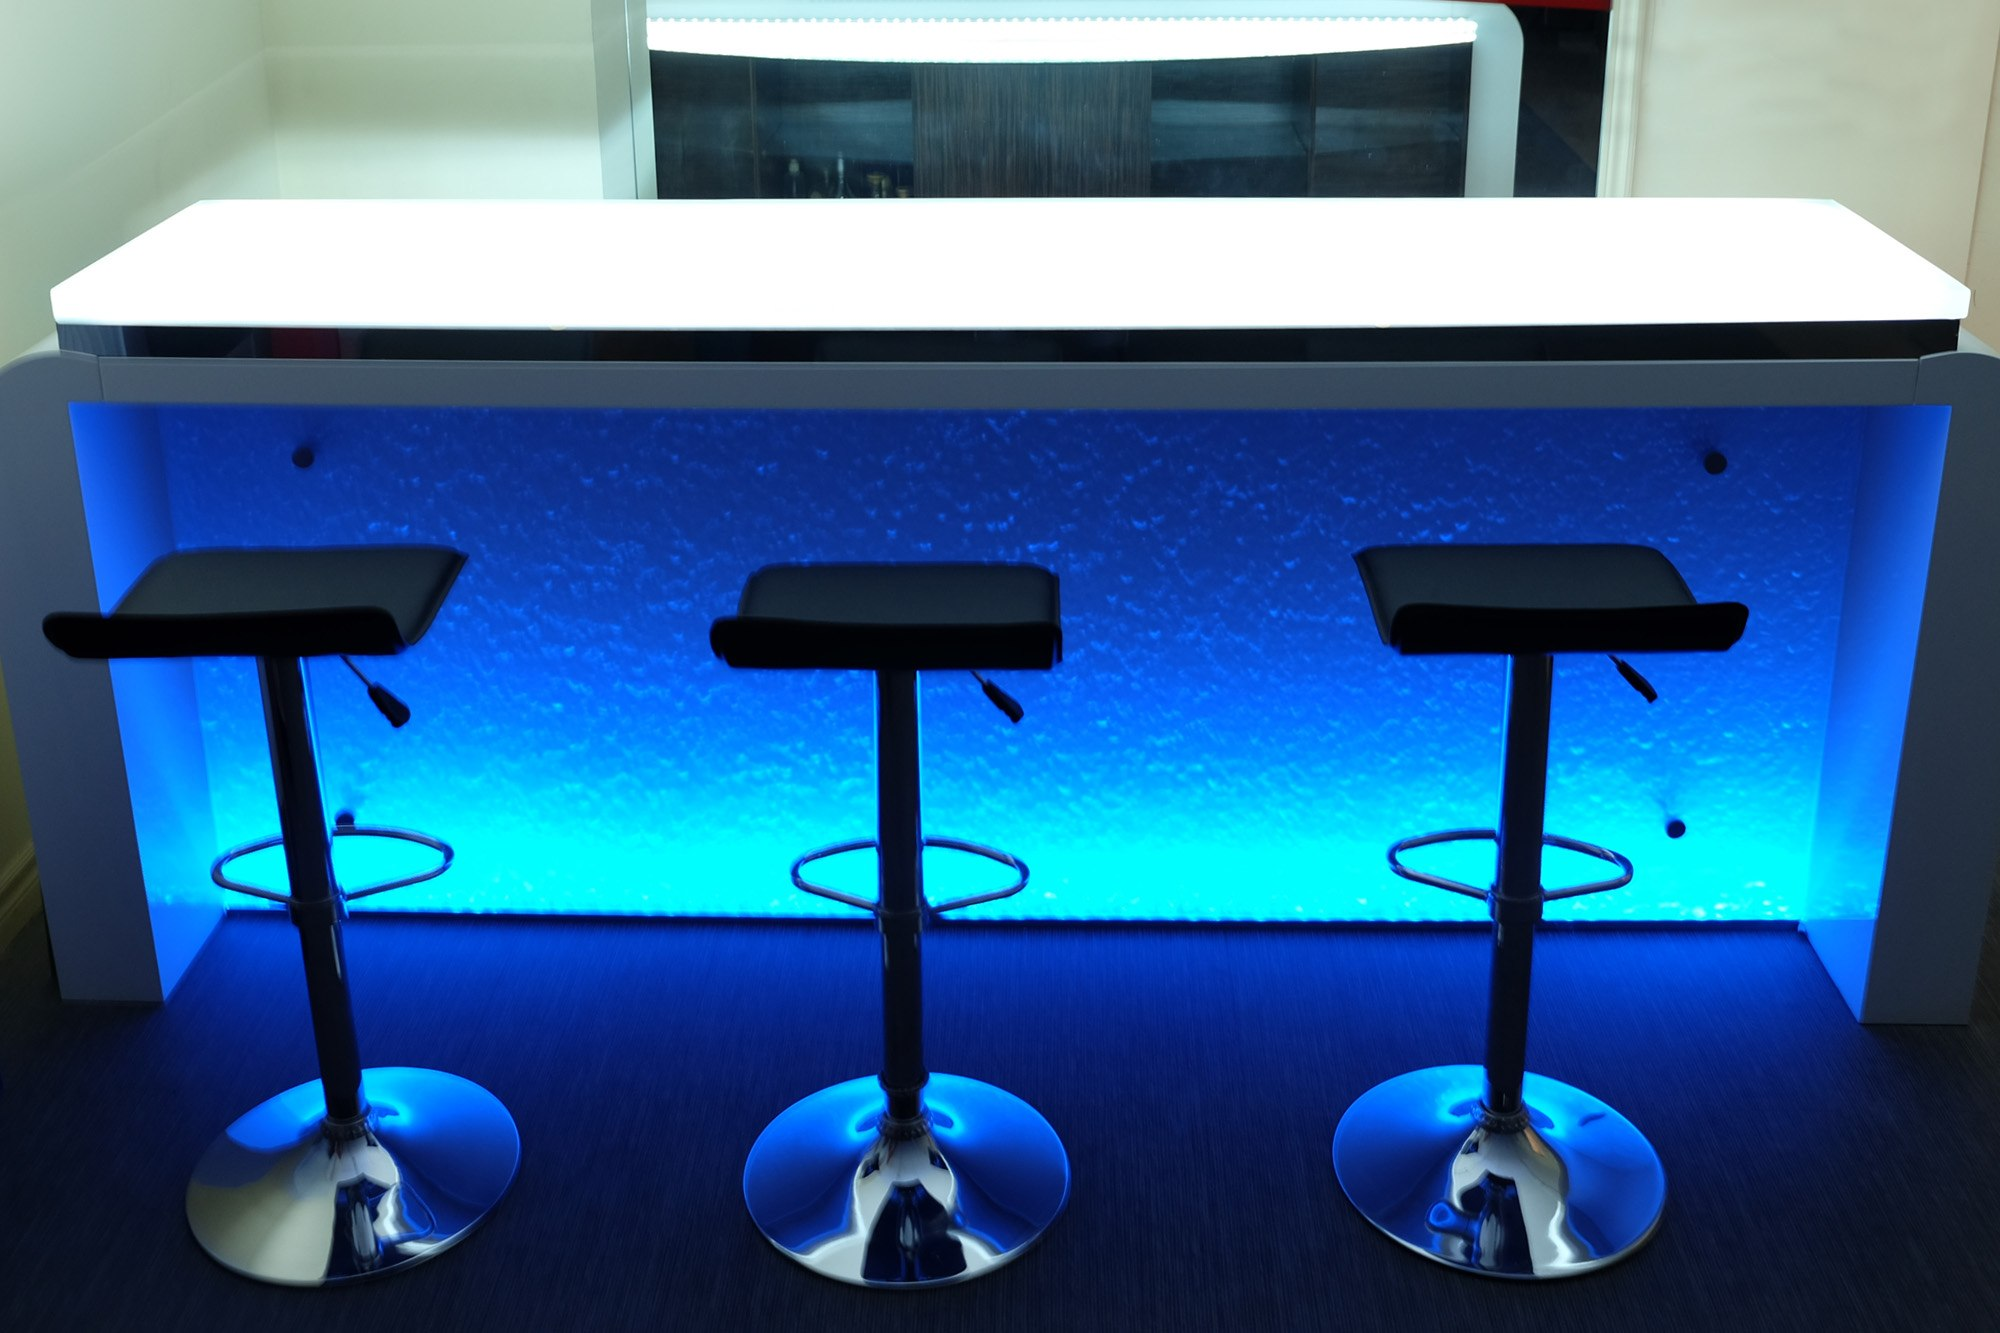 The Ultimate Luxury Touch For Your Kitchen Decor - Glass Countertops homesthetics (5)